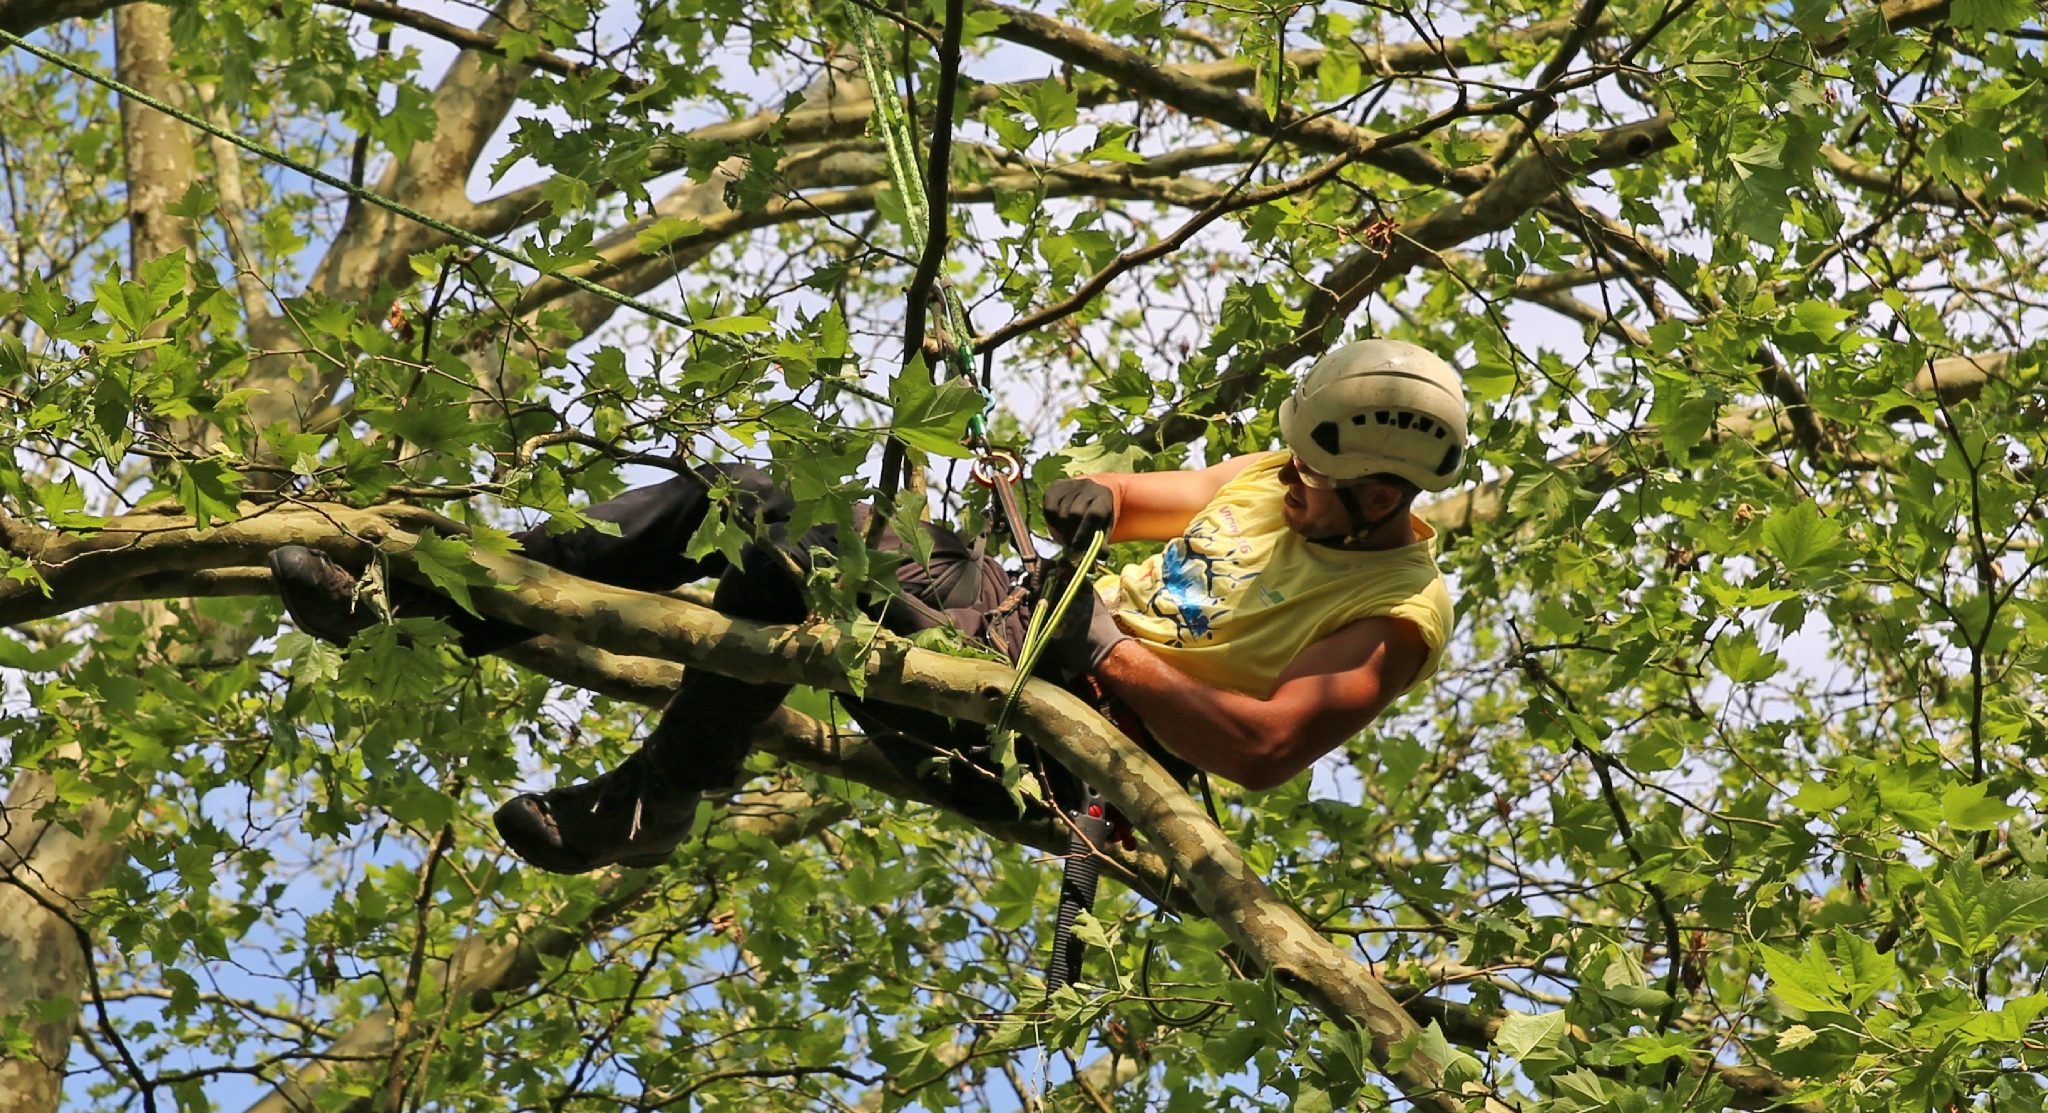 Rencontre nationale d'arboriculture 2016